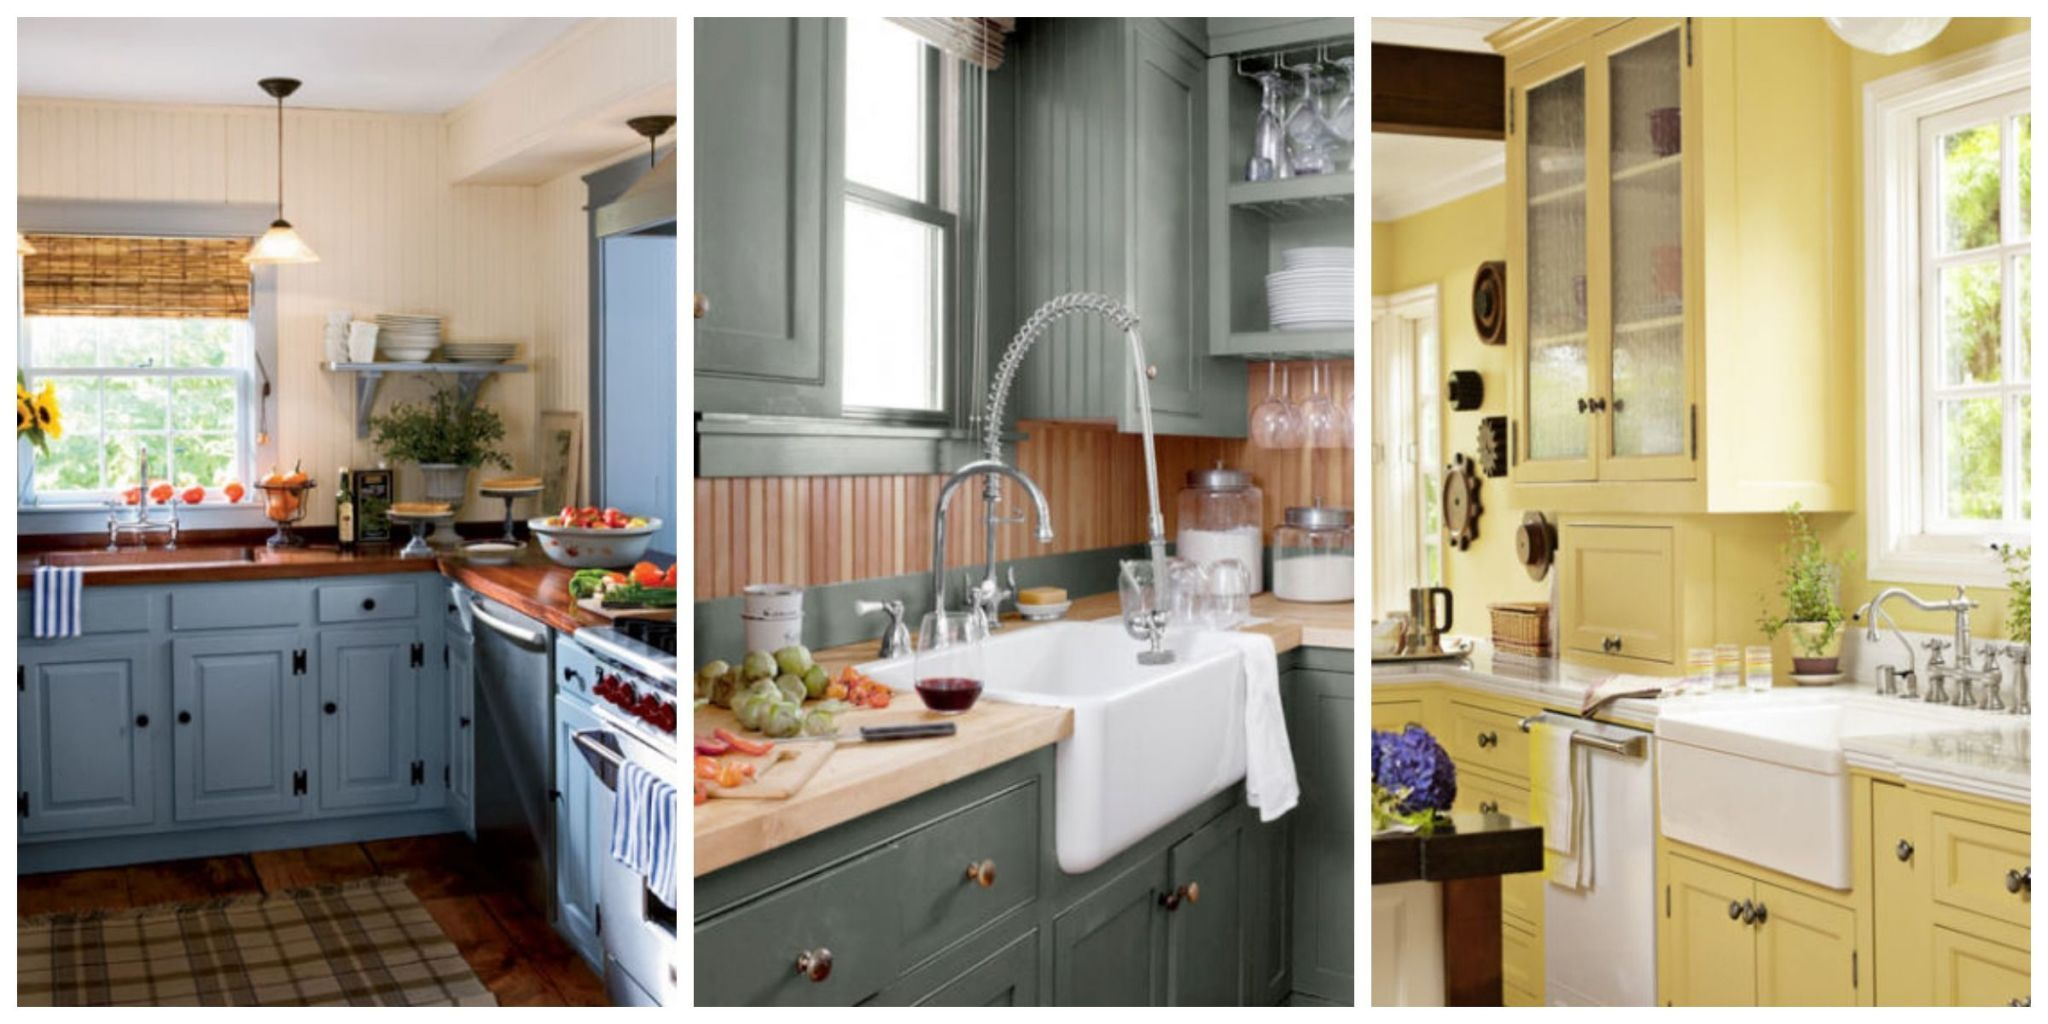 Etonnant Create A Beautiful And Colorful Kitchen With These Paint And Decorating  Ideas.